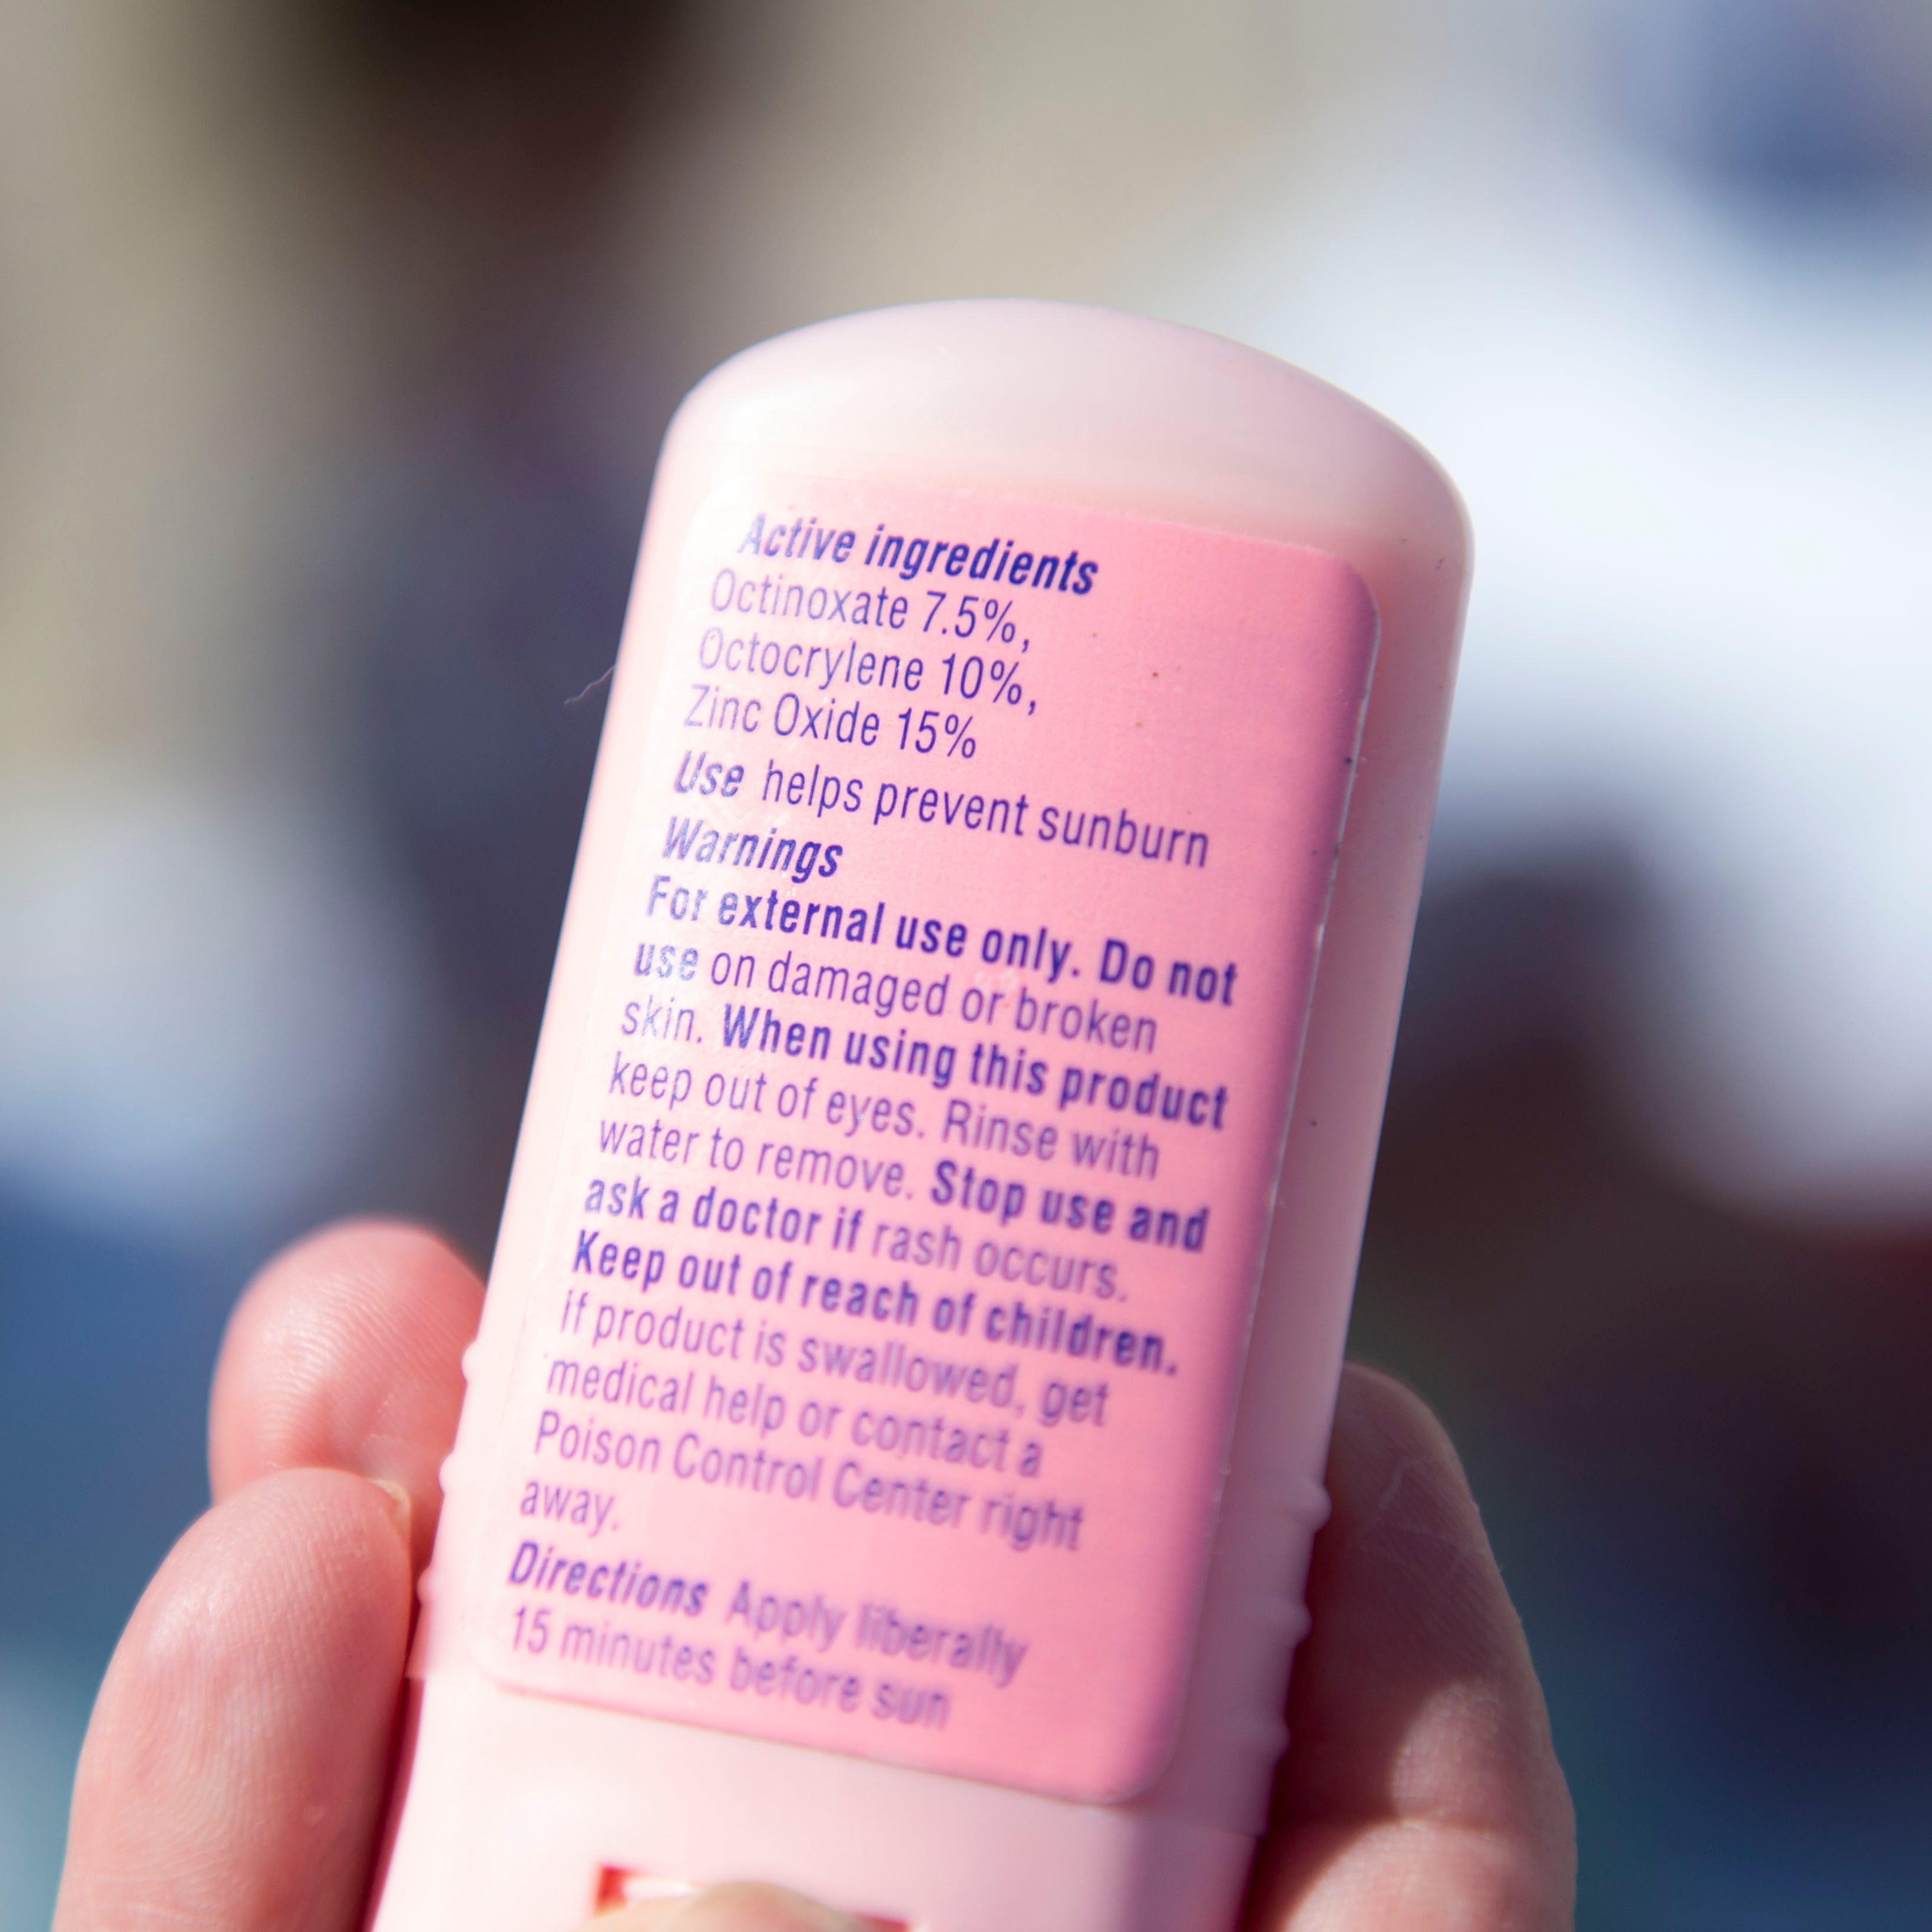 Florida bill would ban sunscreens with oxybenzone and octinoxate, like Hawaii and Key West